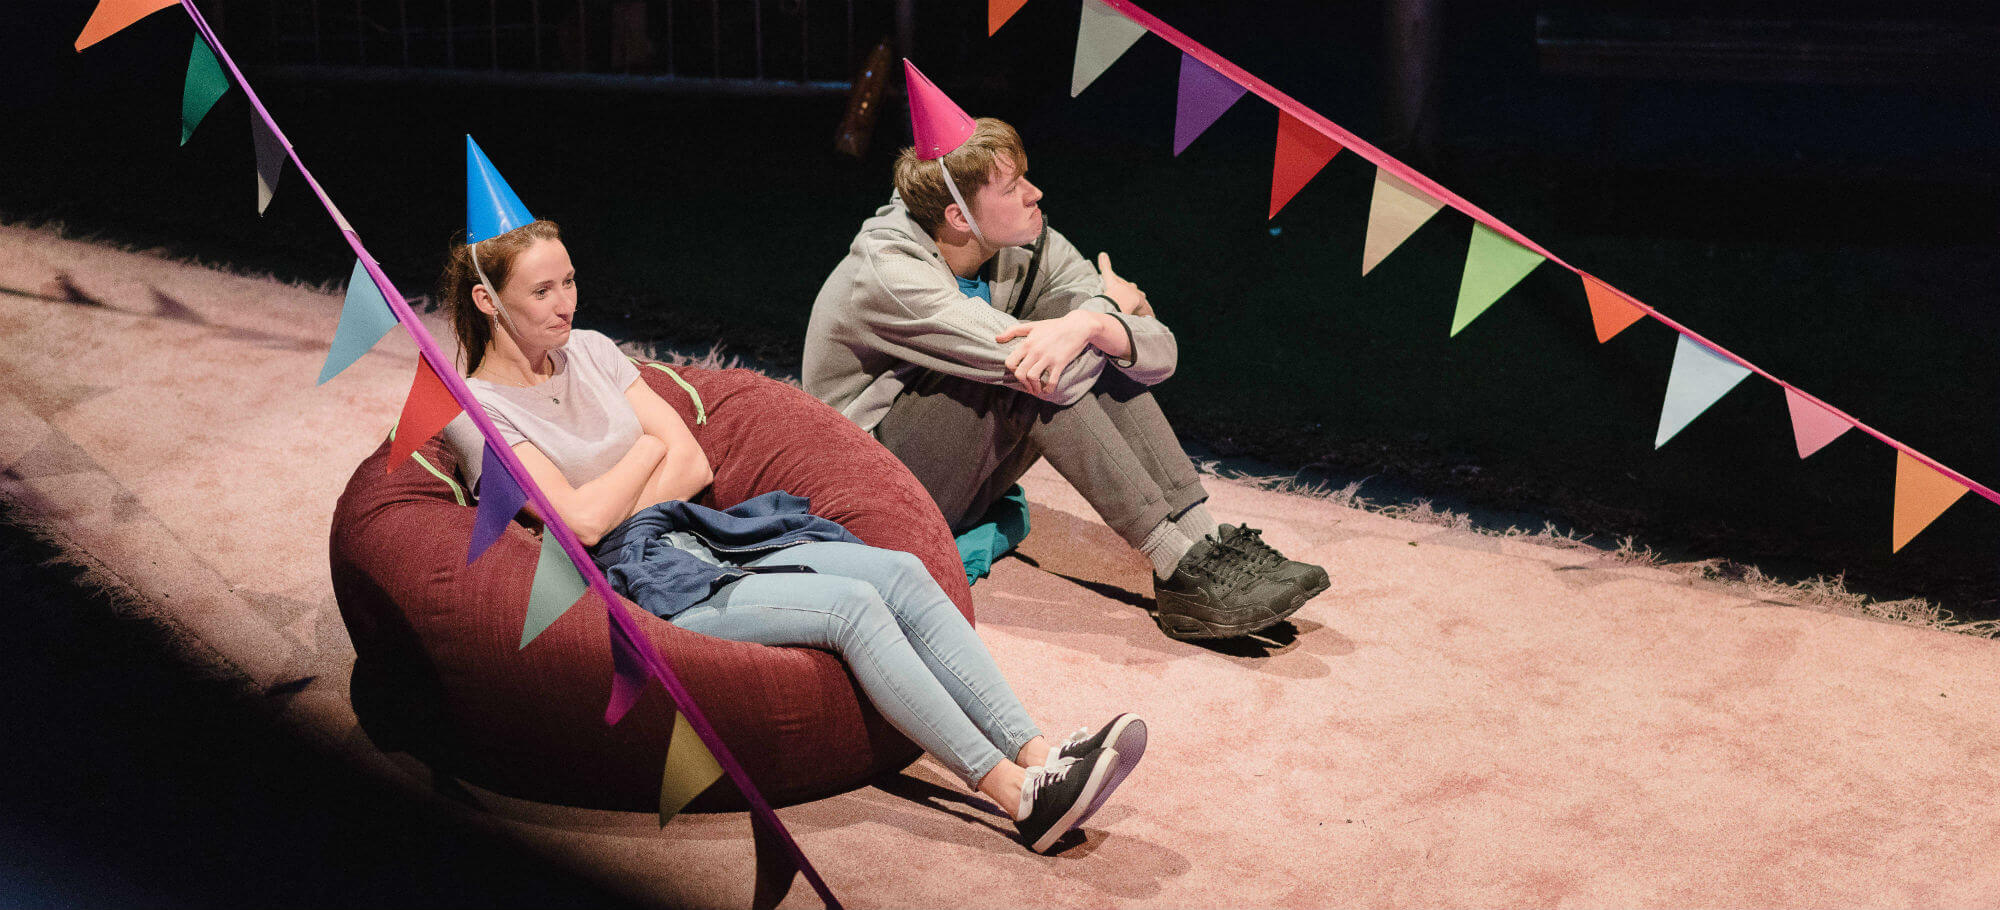 YOUTH THEATRE – Script Writing 14-19s – Application New Views